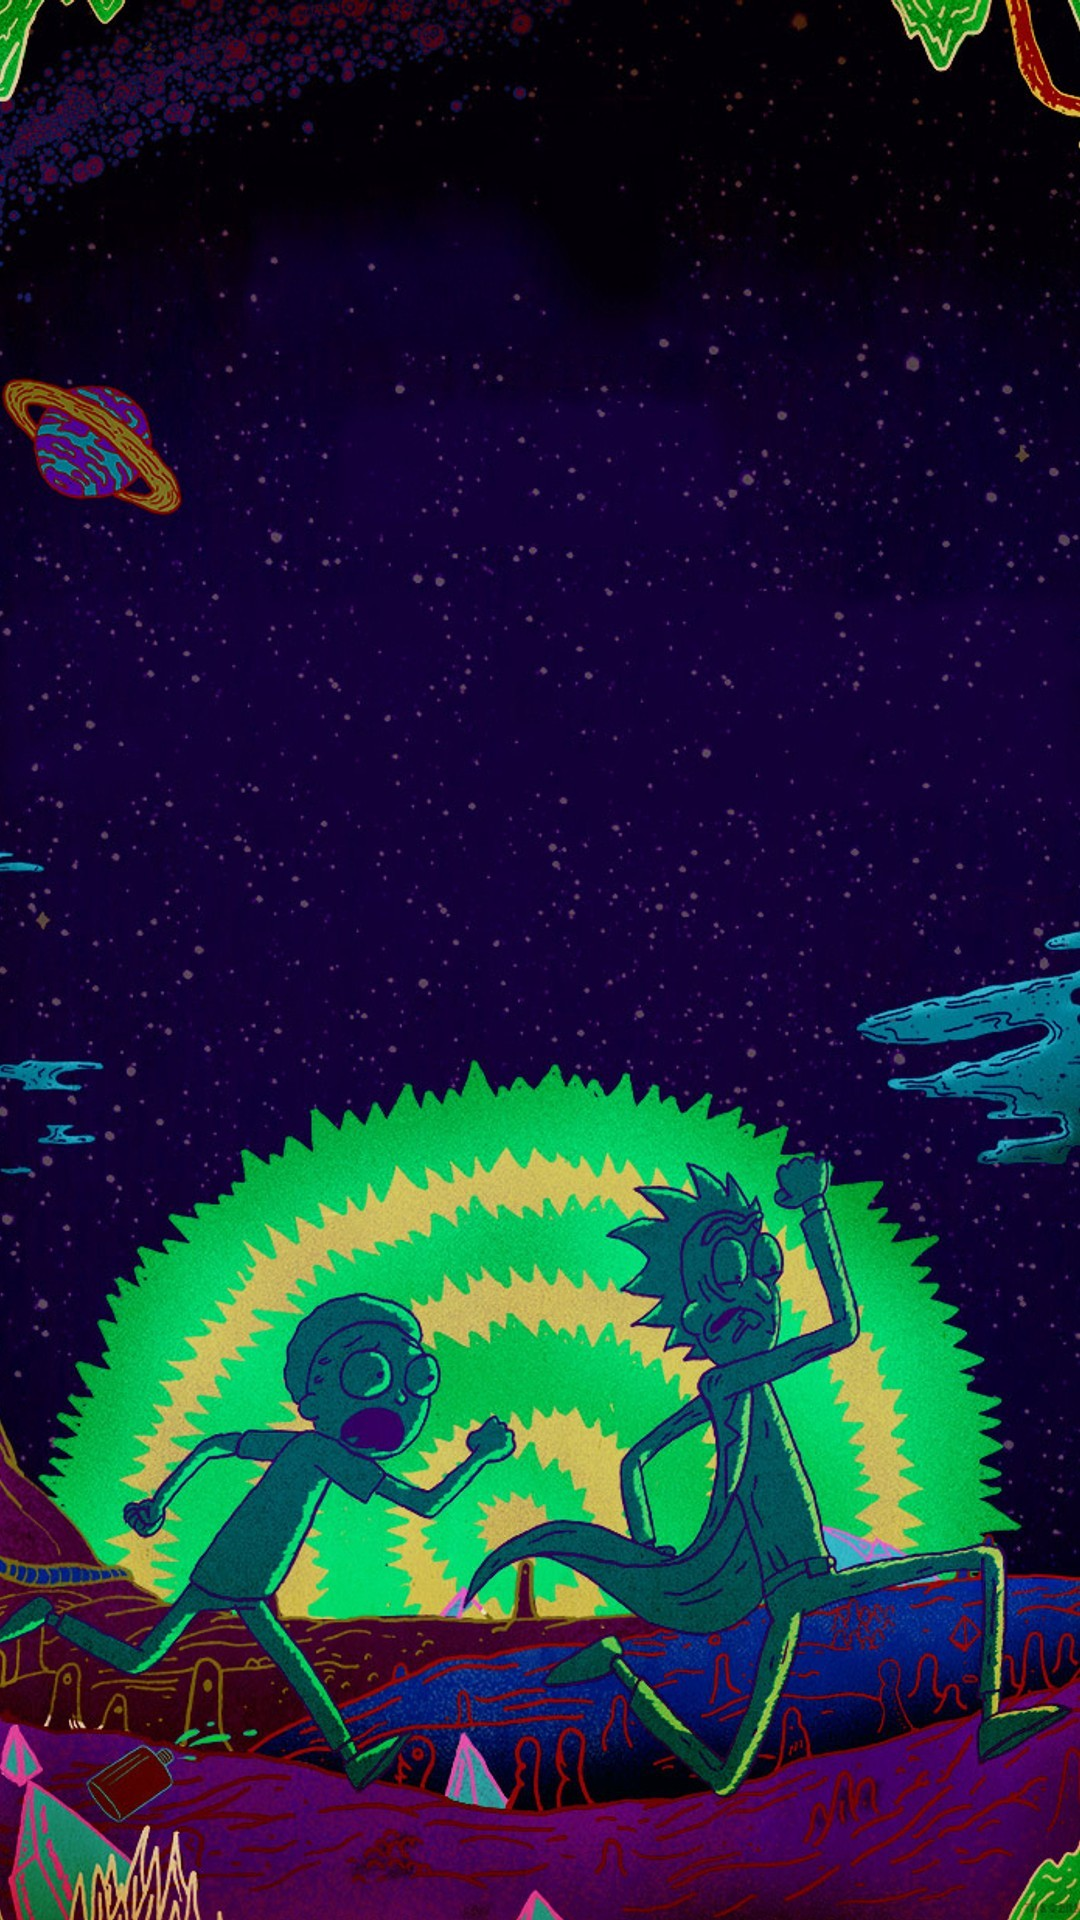 Rick And Morty I Phones Wallpaper With High Resolution Rick Et Morty Wallpaper Iphone 2877484 Hd Wallpaper Backgrounds Download